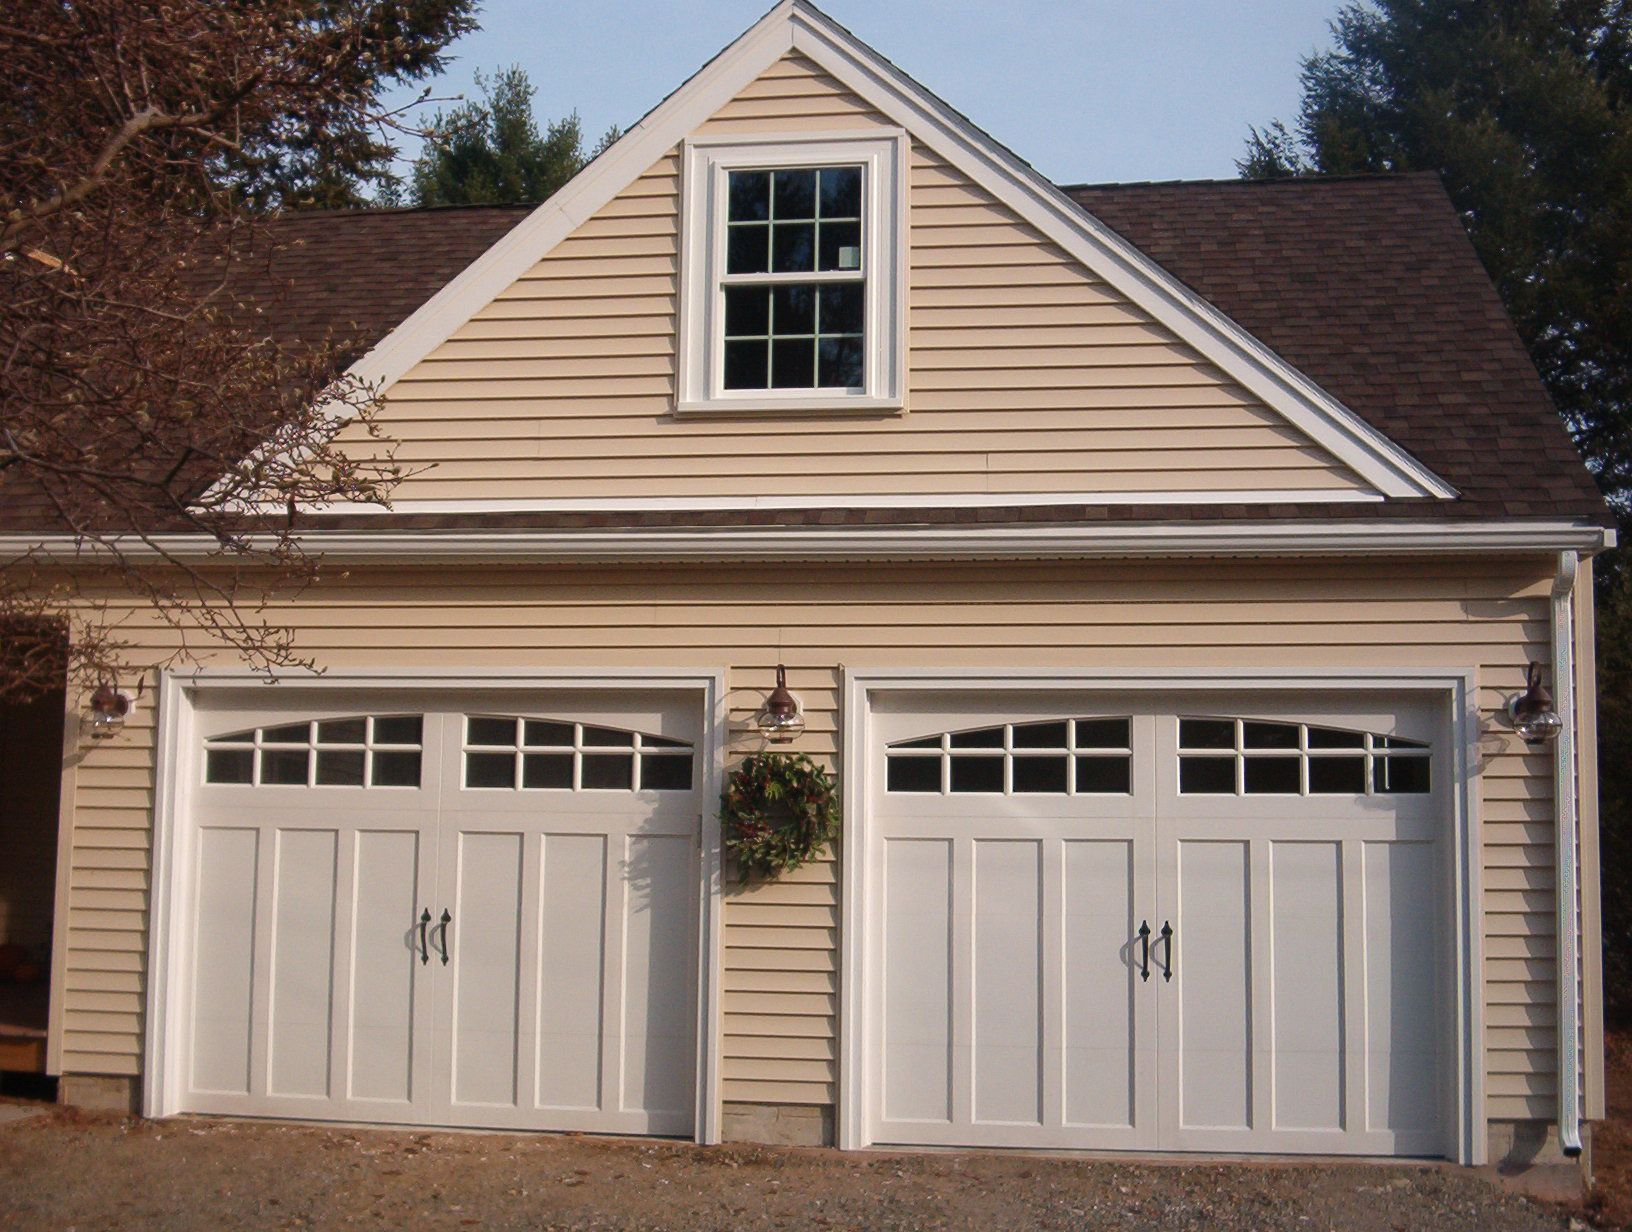 Classica northampton garage door white 9 x 8 no windows - Garage Doors House Exterior Pinterest Garage Doors Doors And Overhead Garage Door